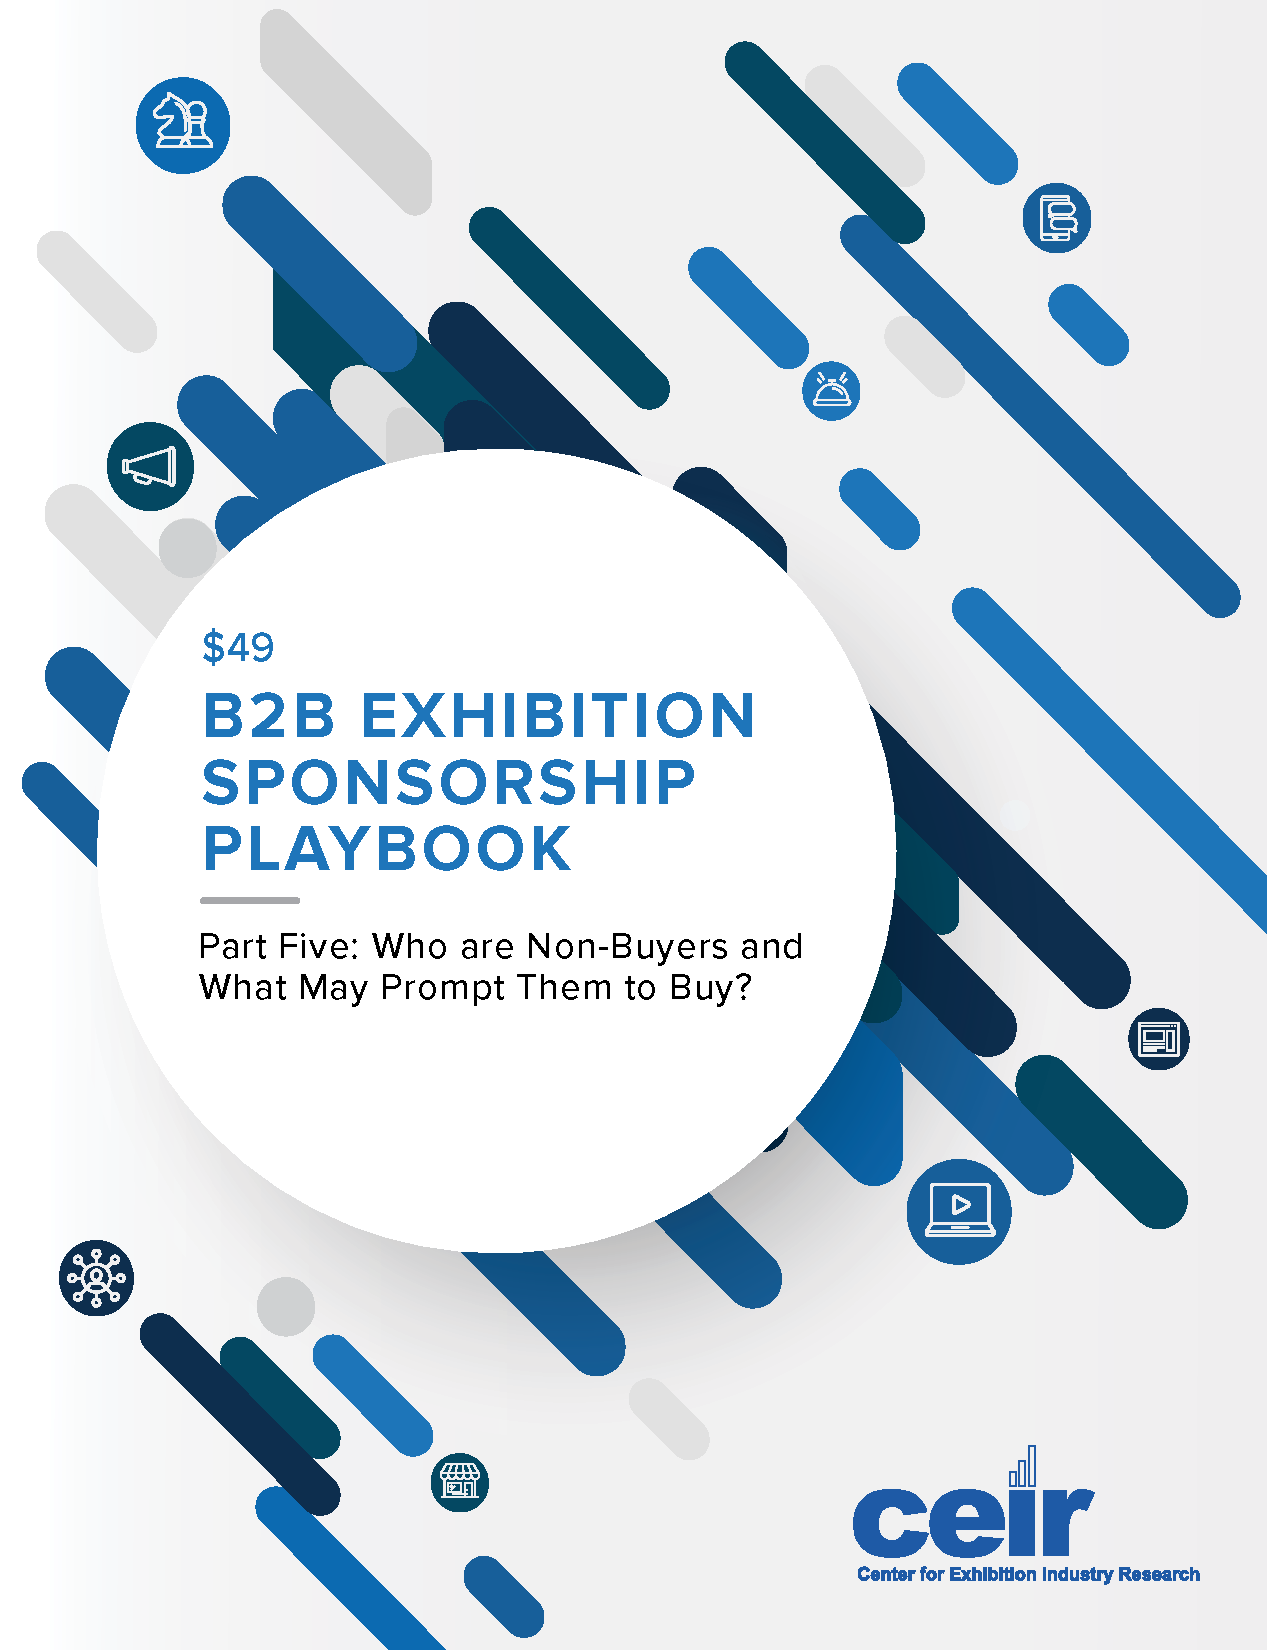 2019 B2B Exhibition Sponsorship Playbook: Part 5